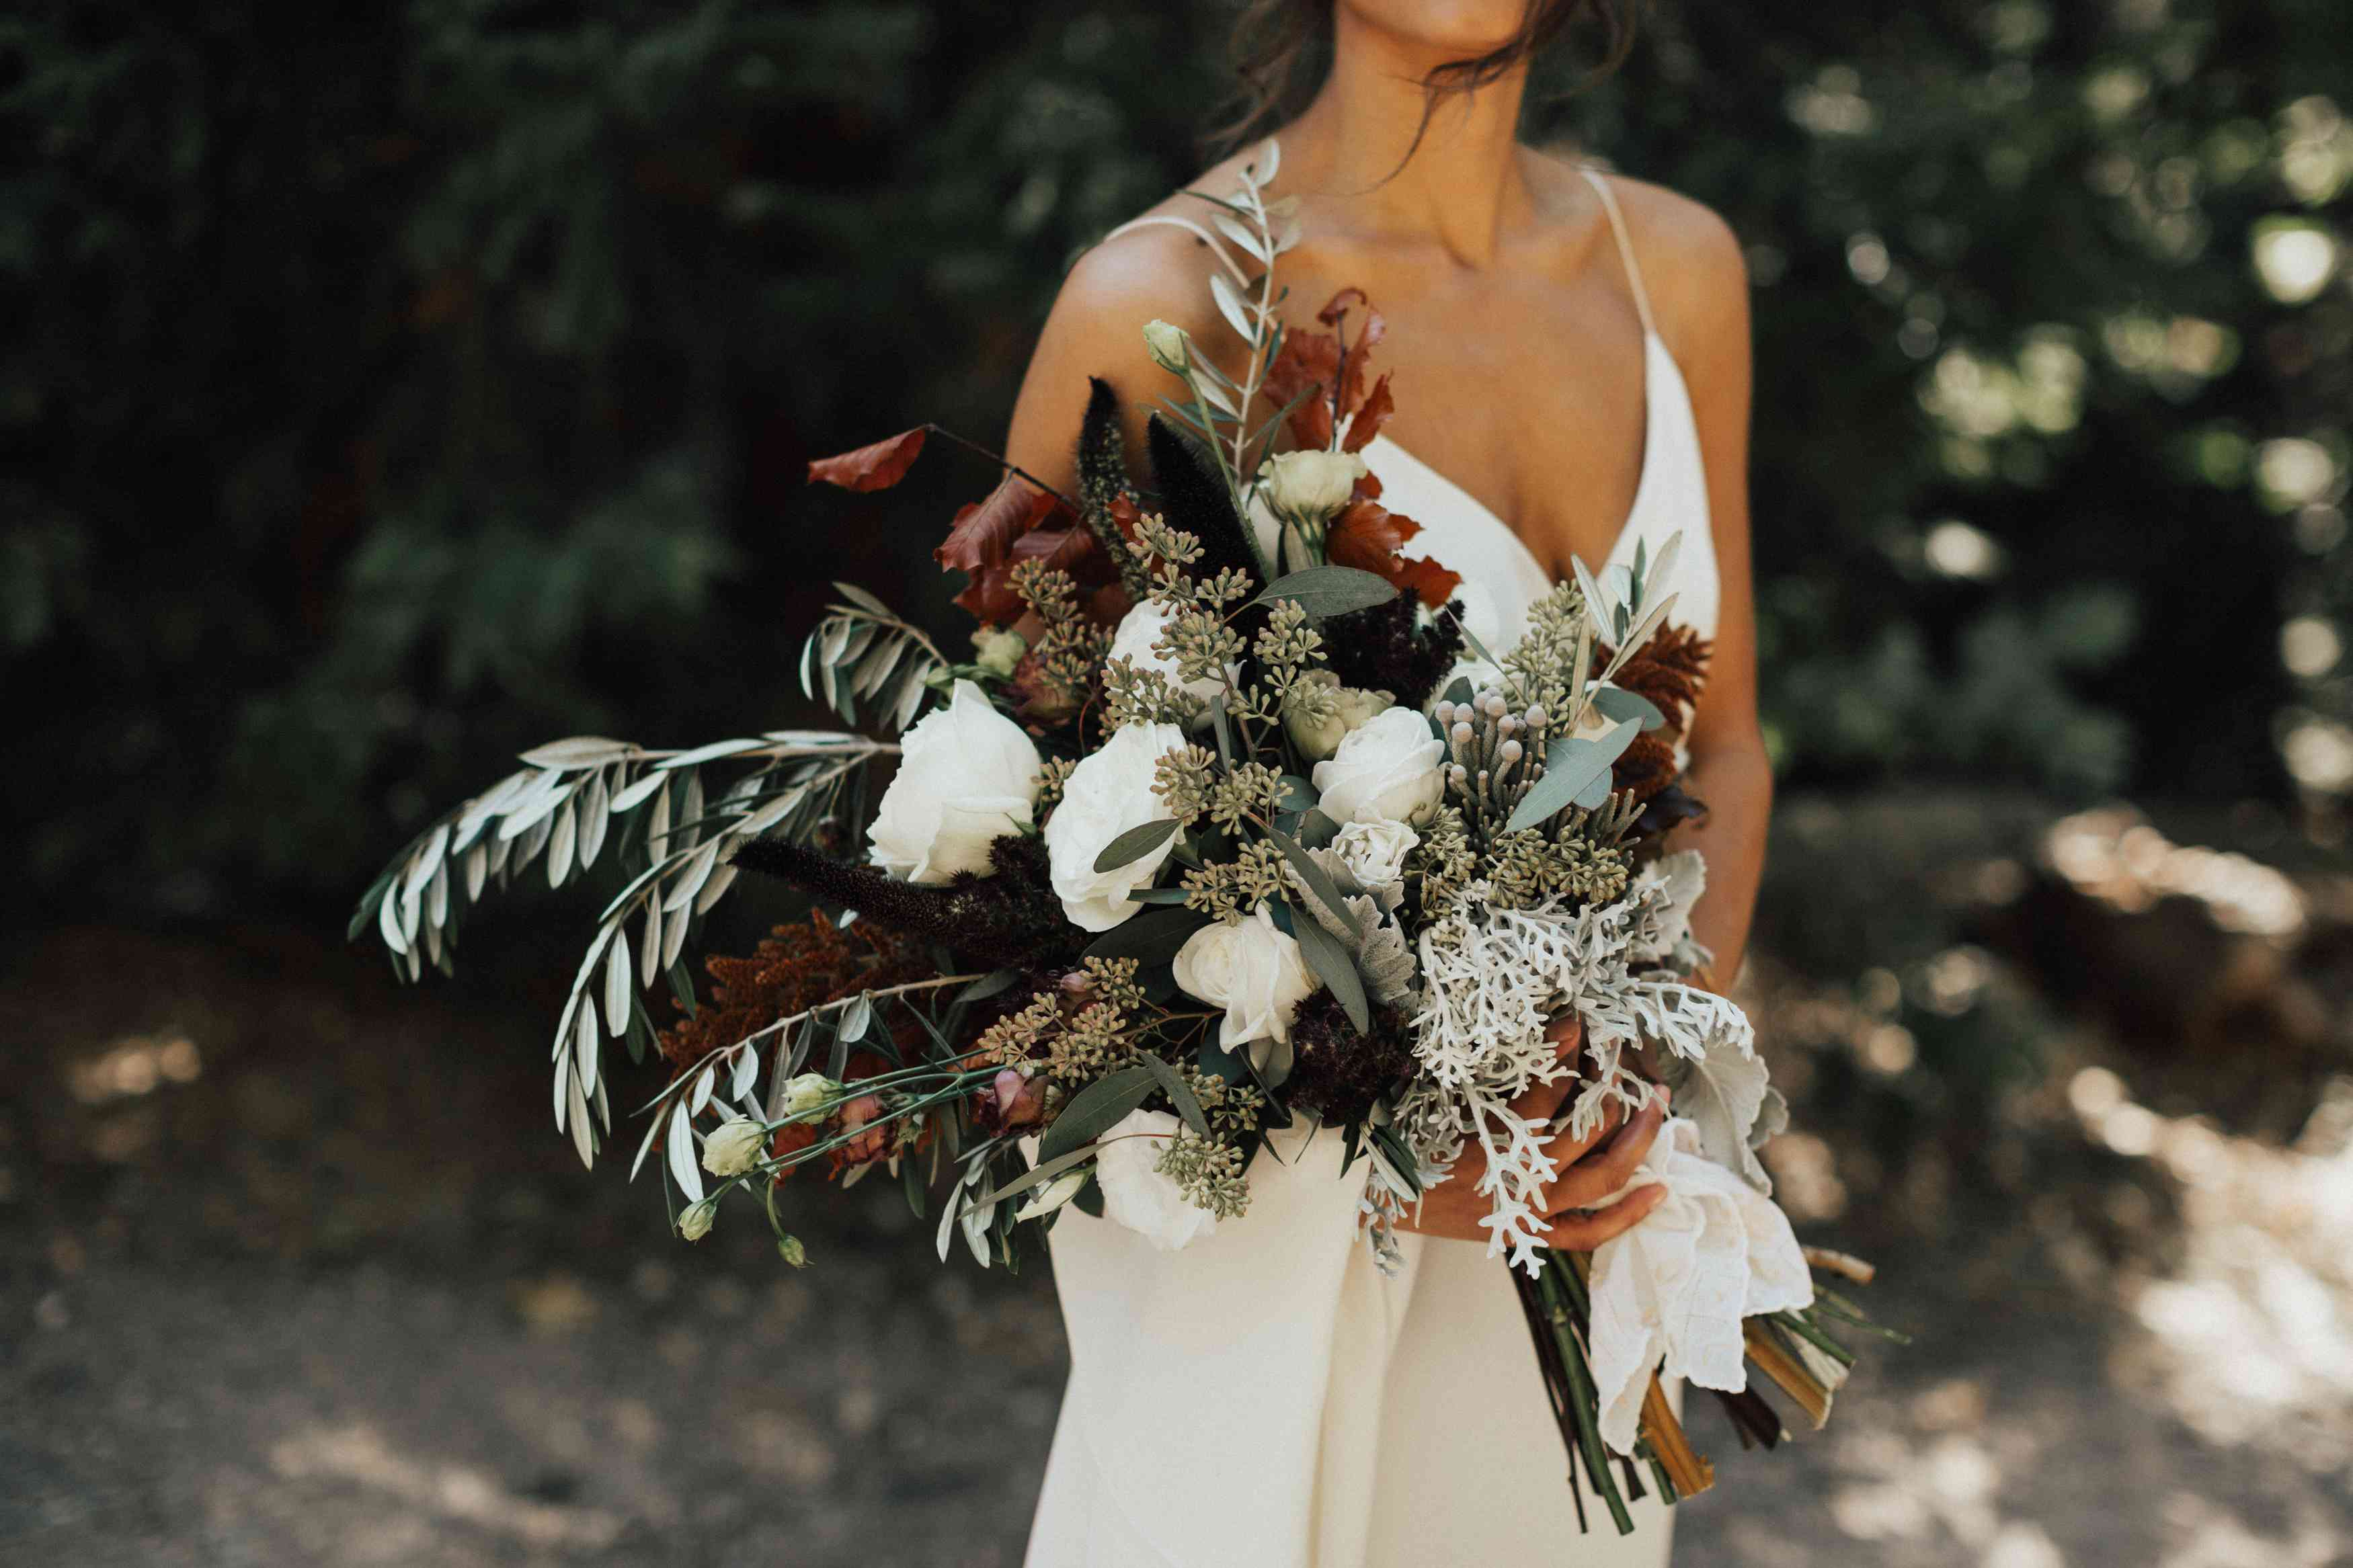 Bride's bouquet made from white roses, lush olive branches, eucalyptus, and fall leaves